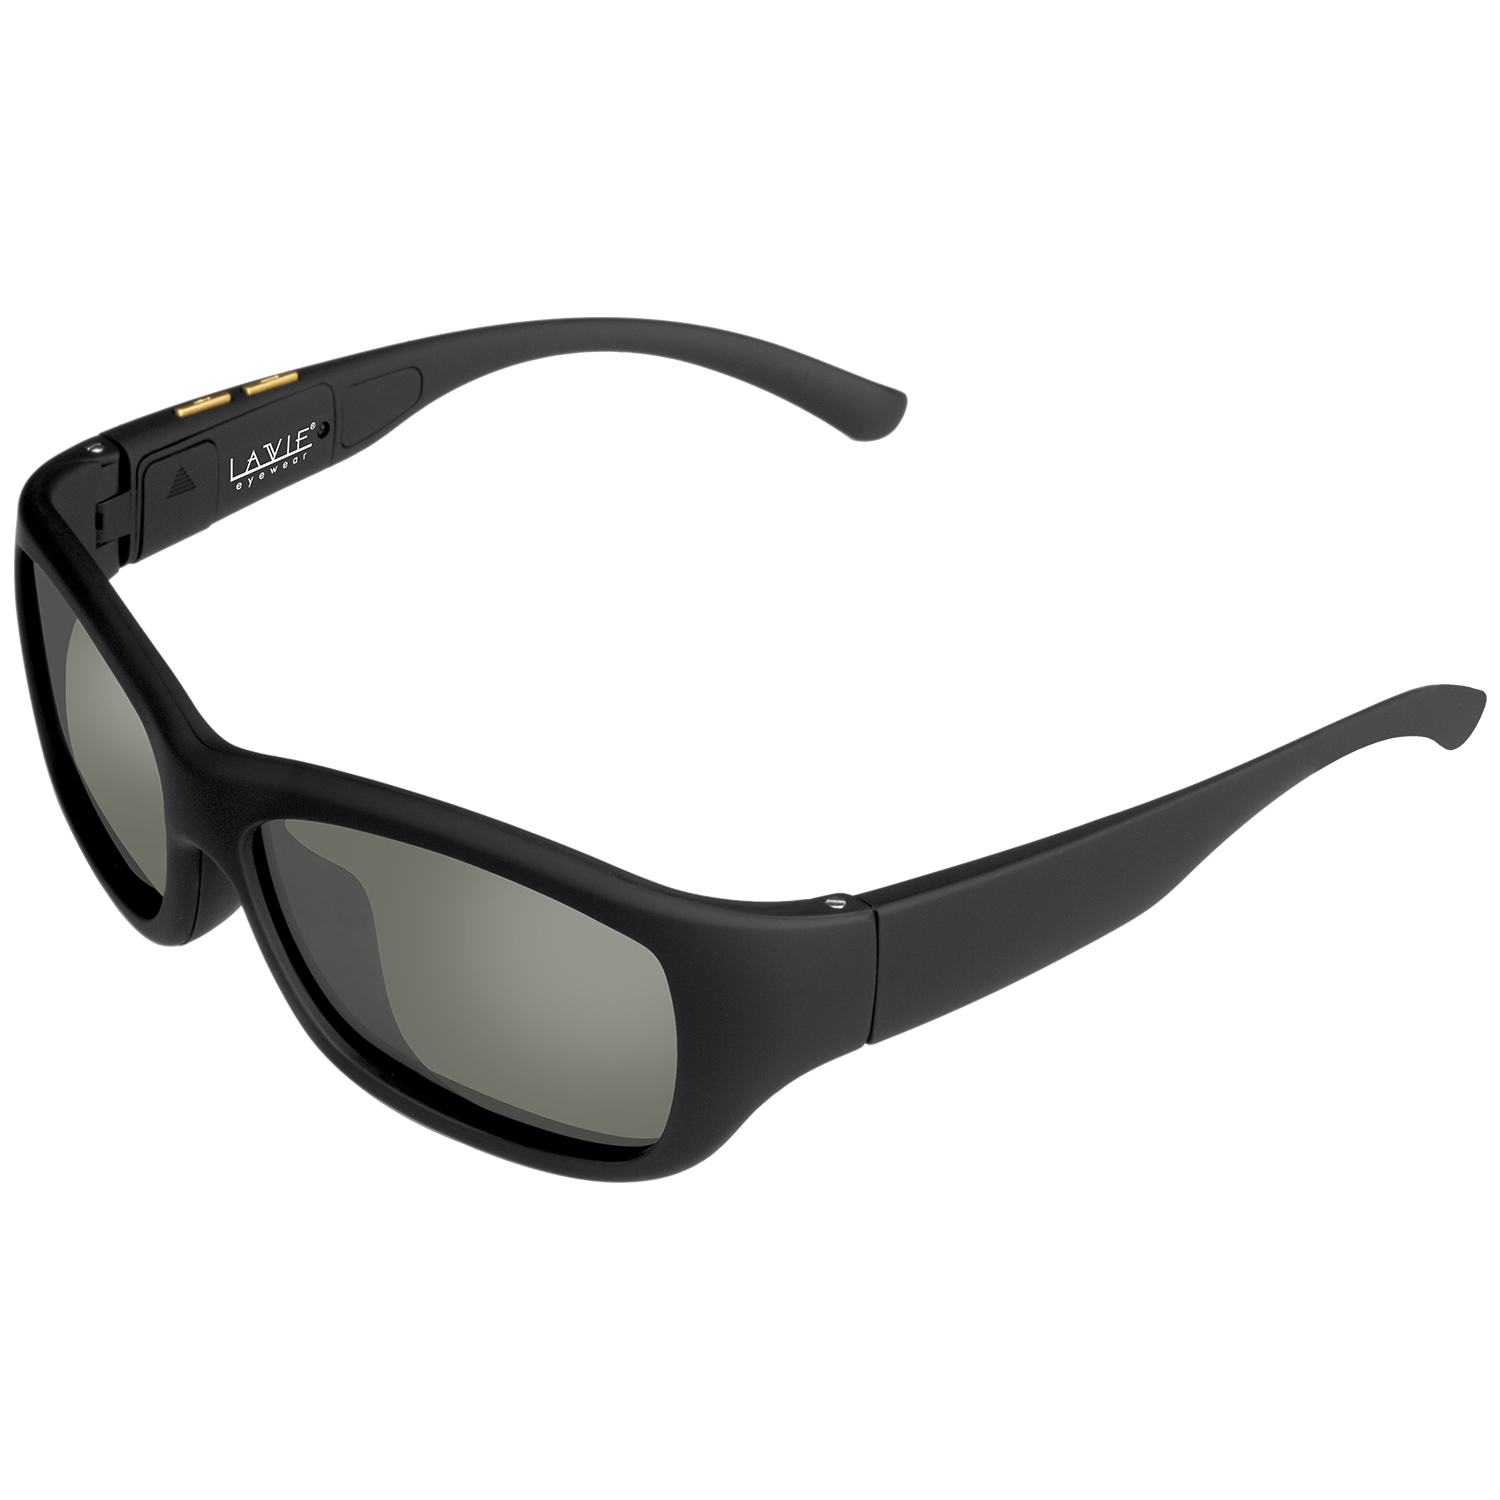 951a46dbcc Sunglasses with Variable Electronic Tint Control Let Your Sunglasses Adapt  To The Light of Surroundings Sunglasses